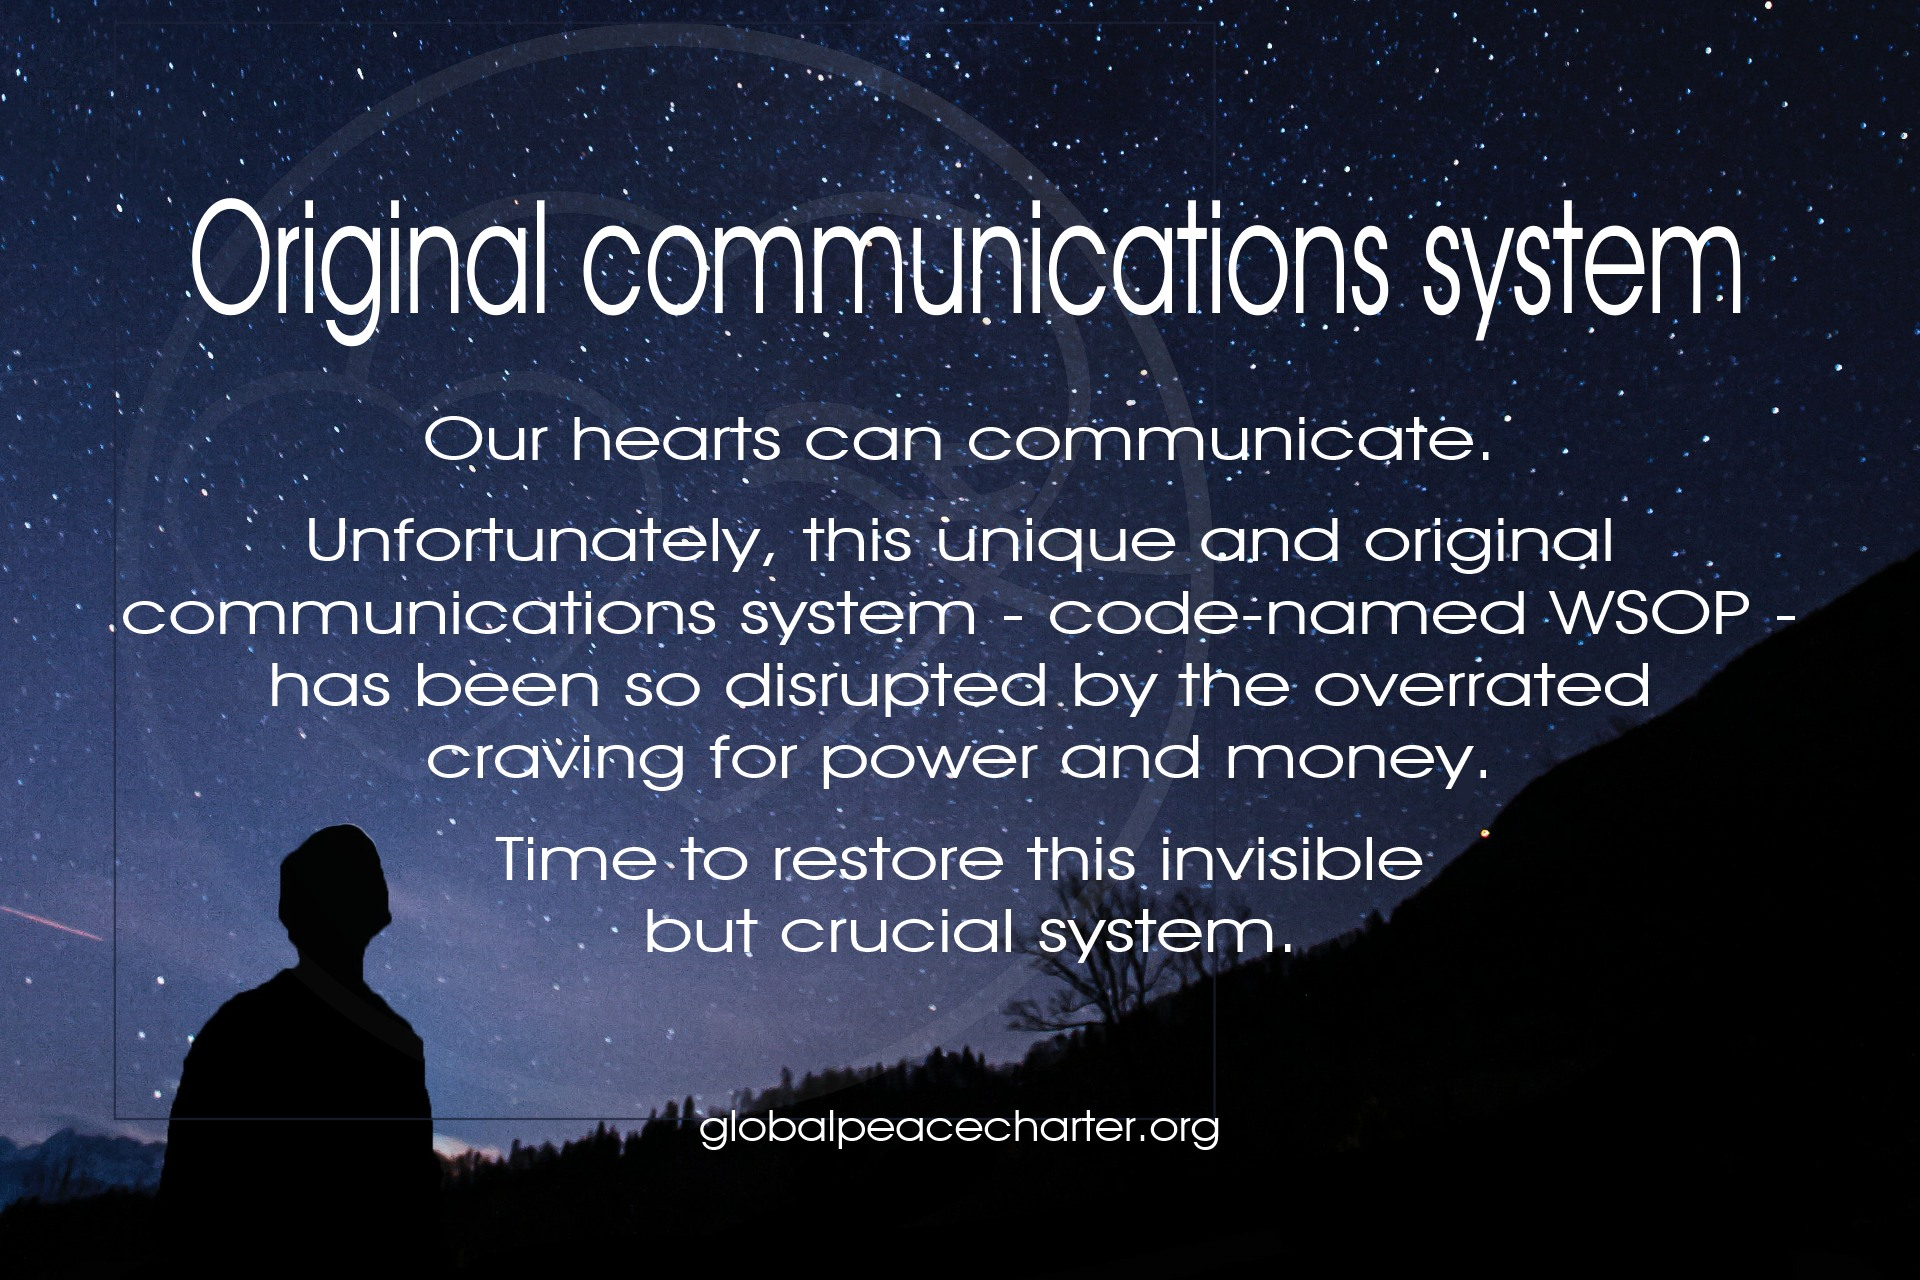 Original communications system